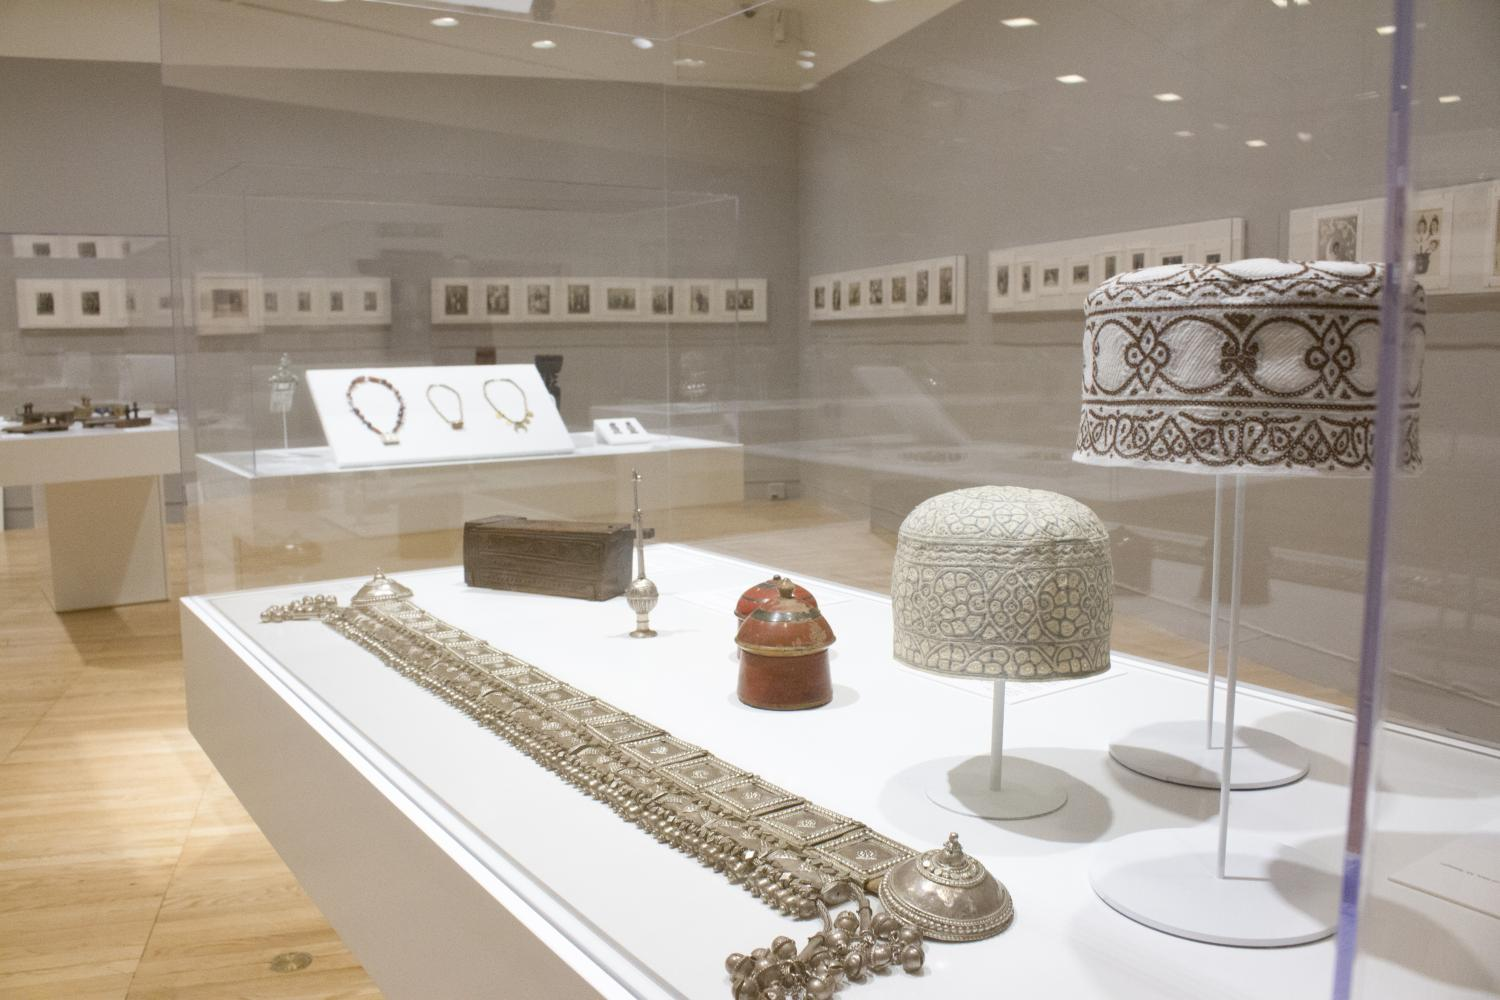 World on the Horizon: Swahili Arts Across the Indian Ocean, installation view at Krannert Art Museum, 2017. Photo by Julia Nucci Kelly. © Board of Trustees of the University of Illinois